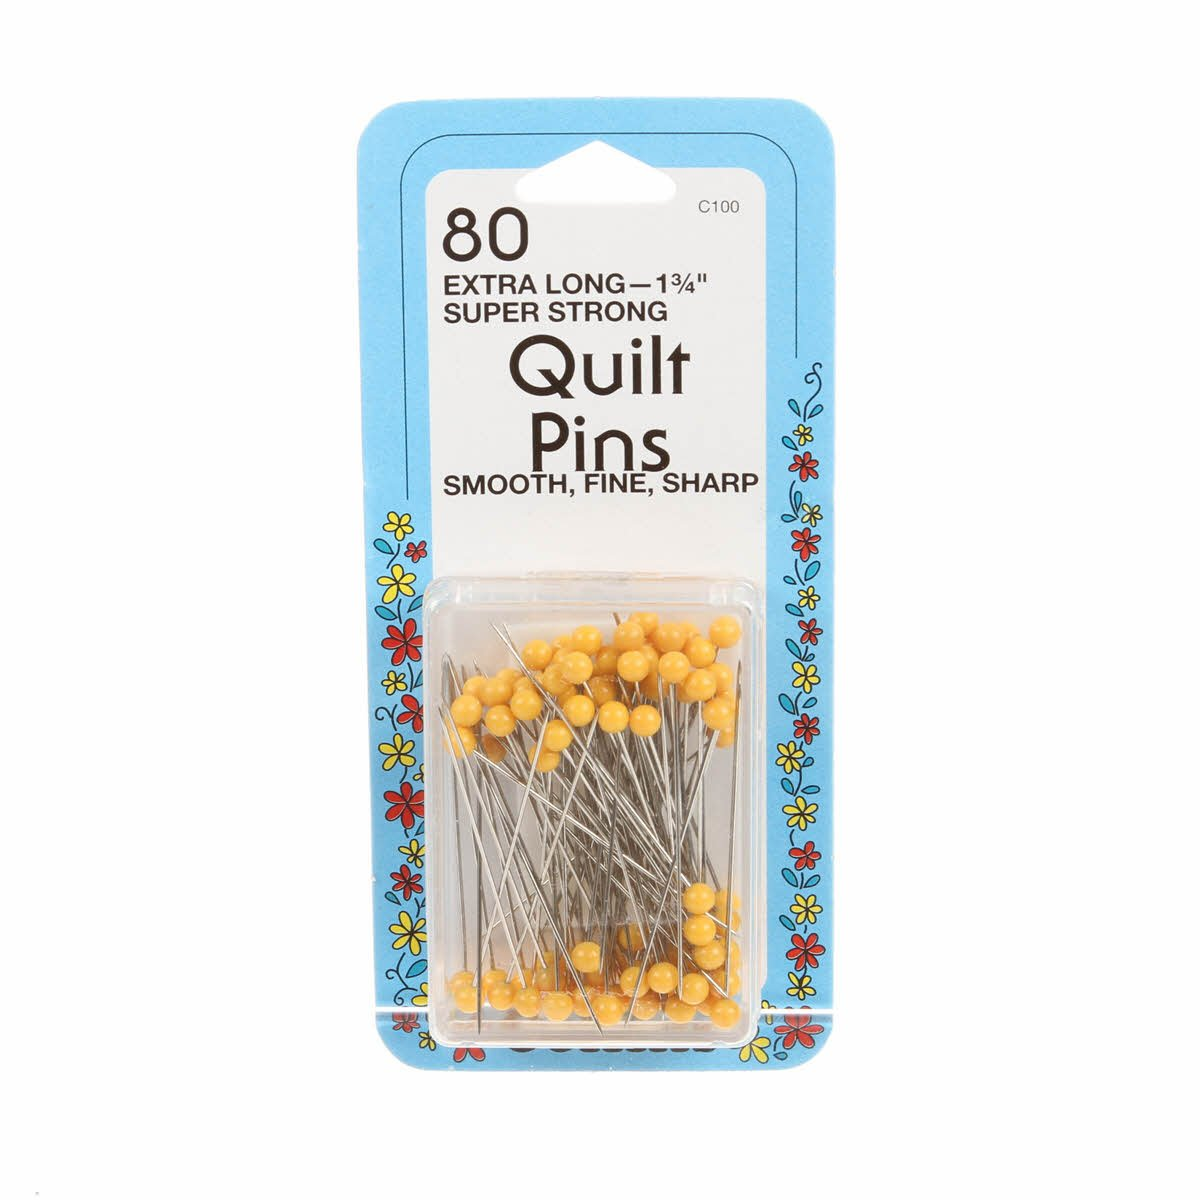 Quilt Pins Extra Long-1 3/4 (80)